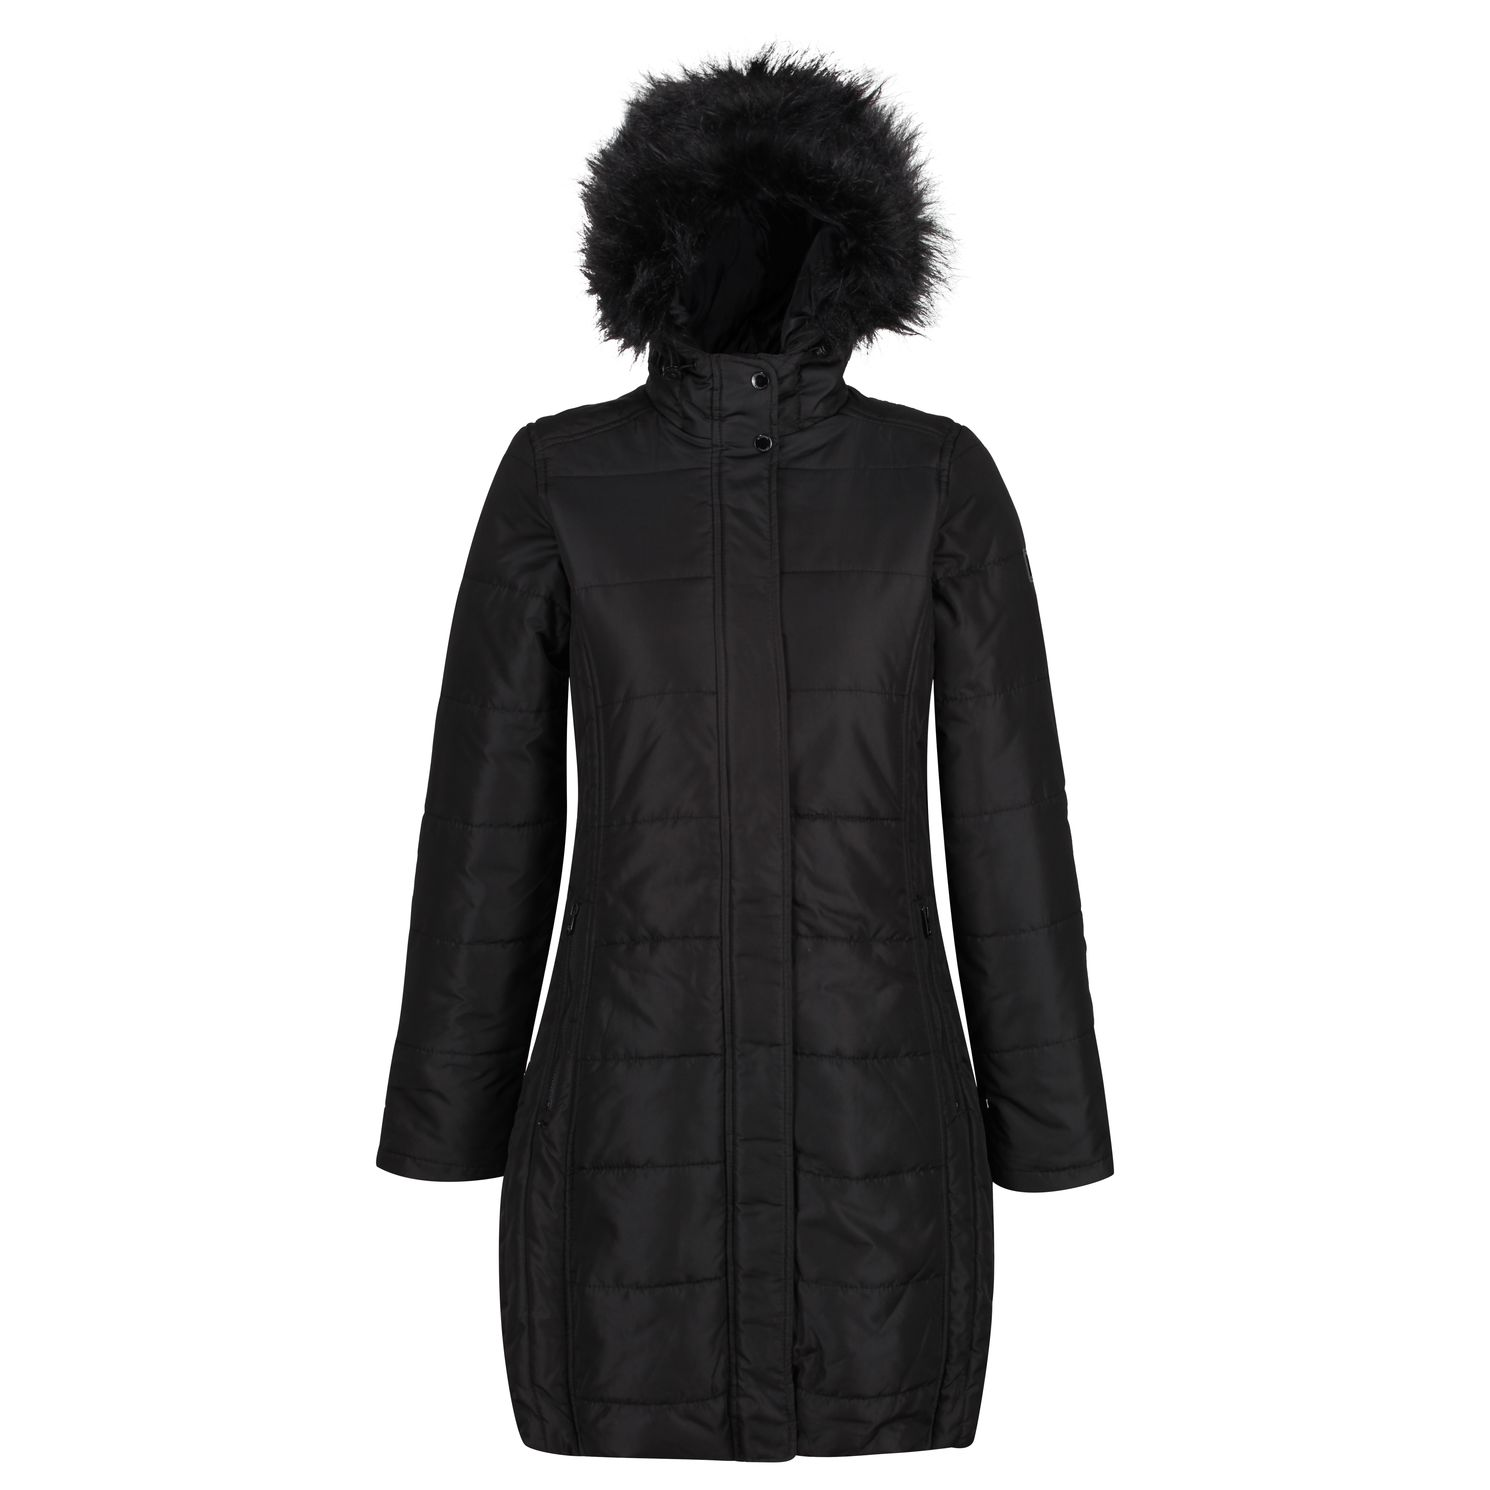 Women's black long jacket with fur hood